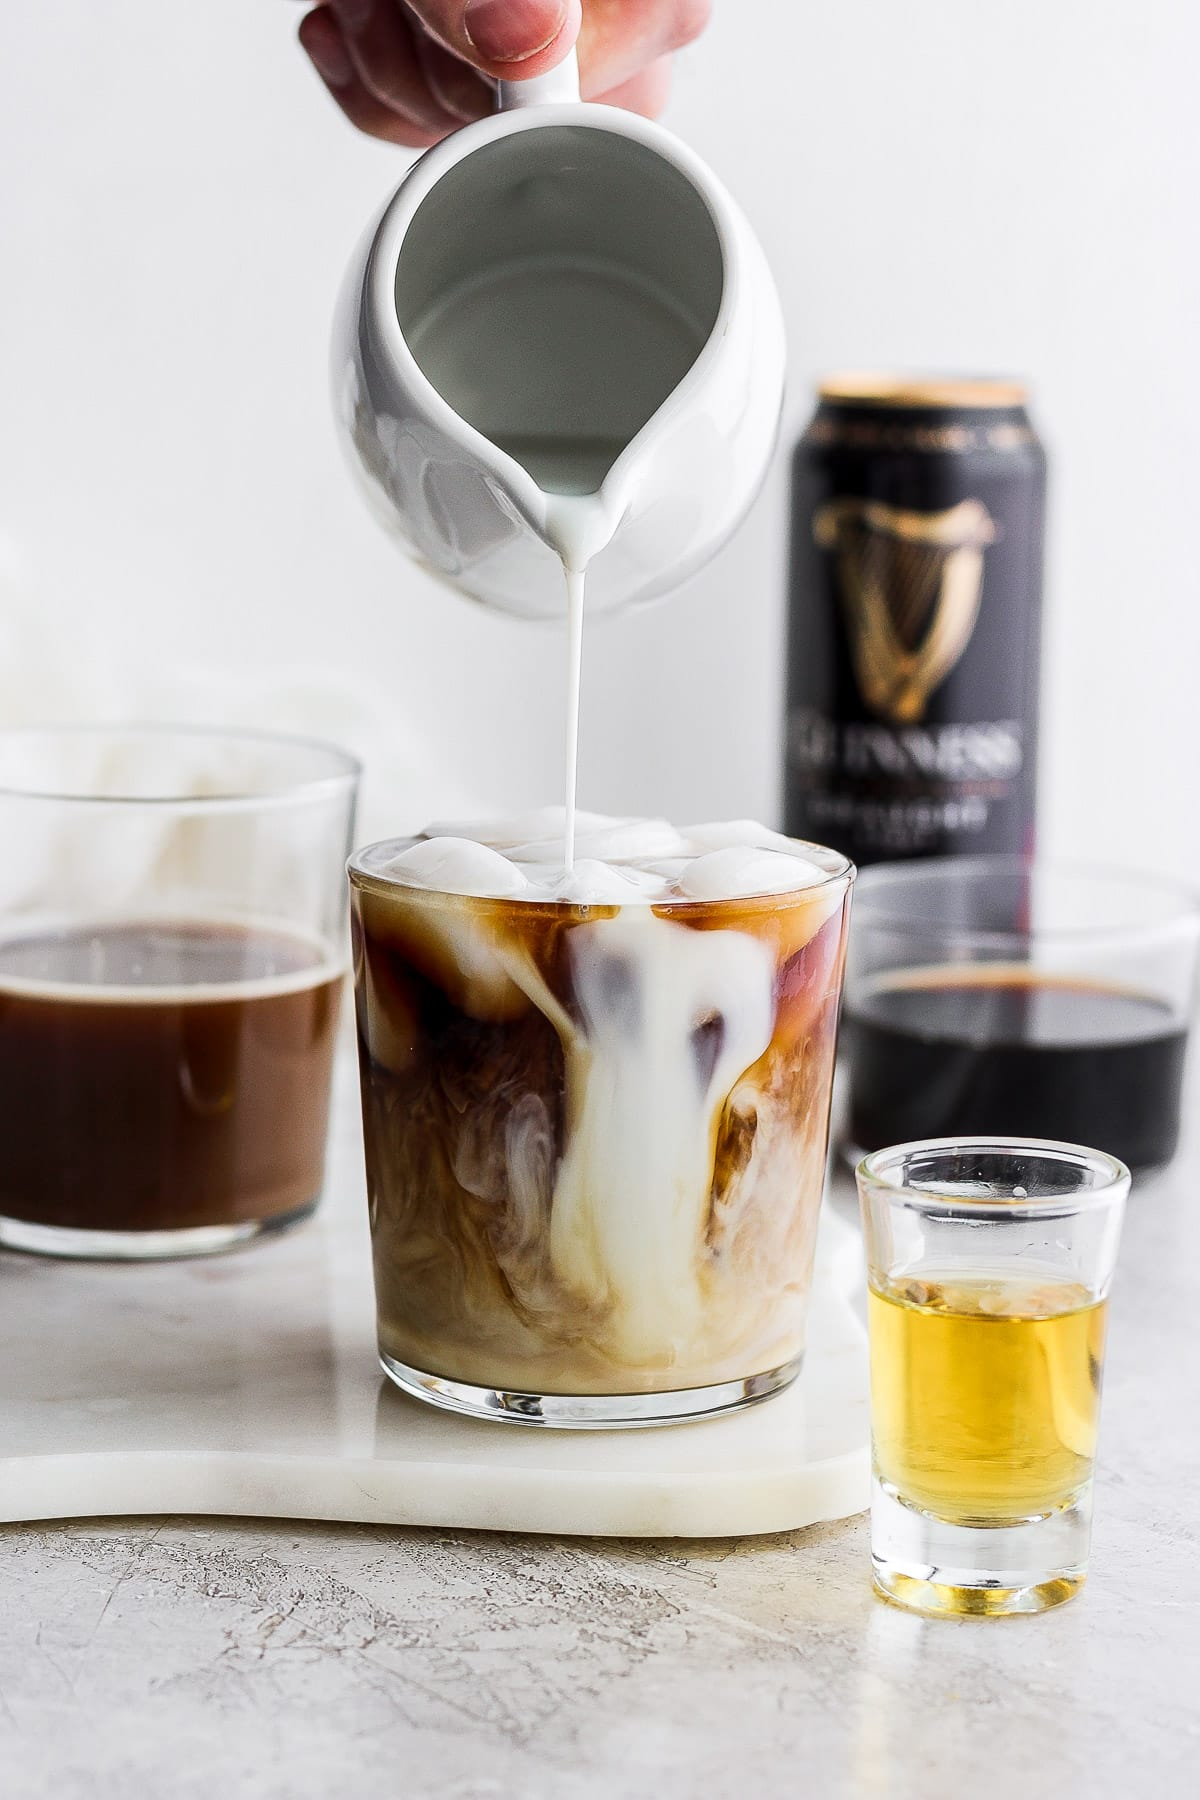 A glass of Irish Cold Brew Coffee with creamer being poured into it.